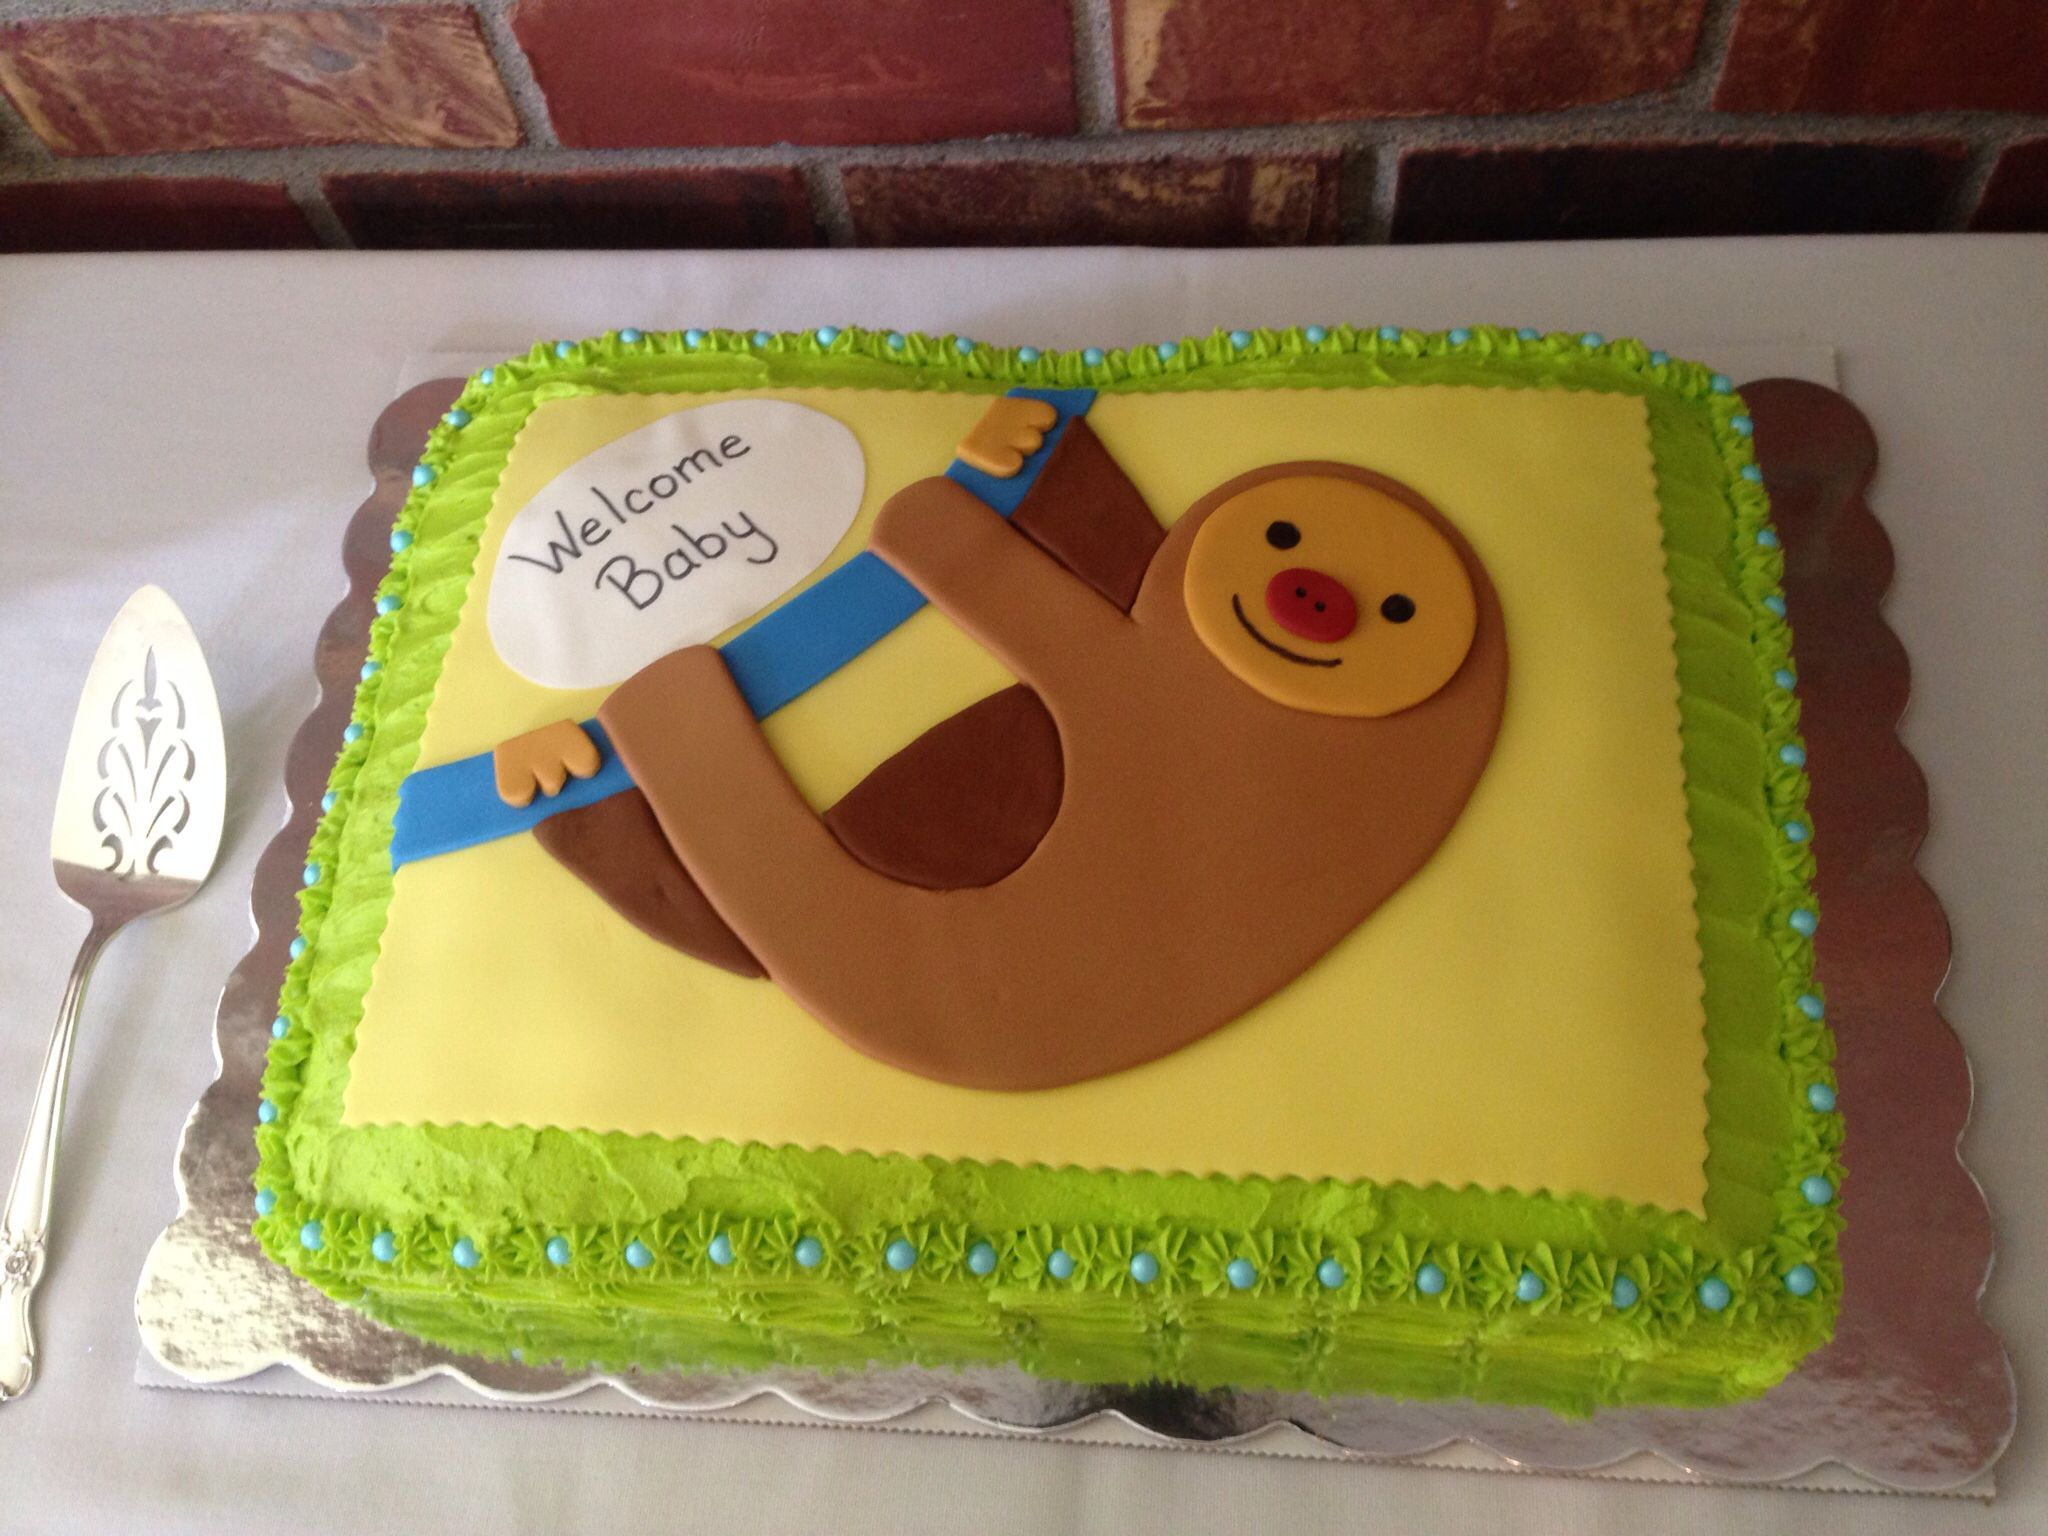 The cake at my sloth baby shower! So cute, thanks Amy! | Sullivan ...